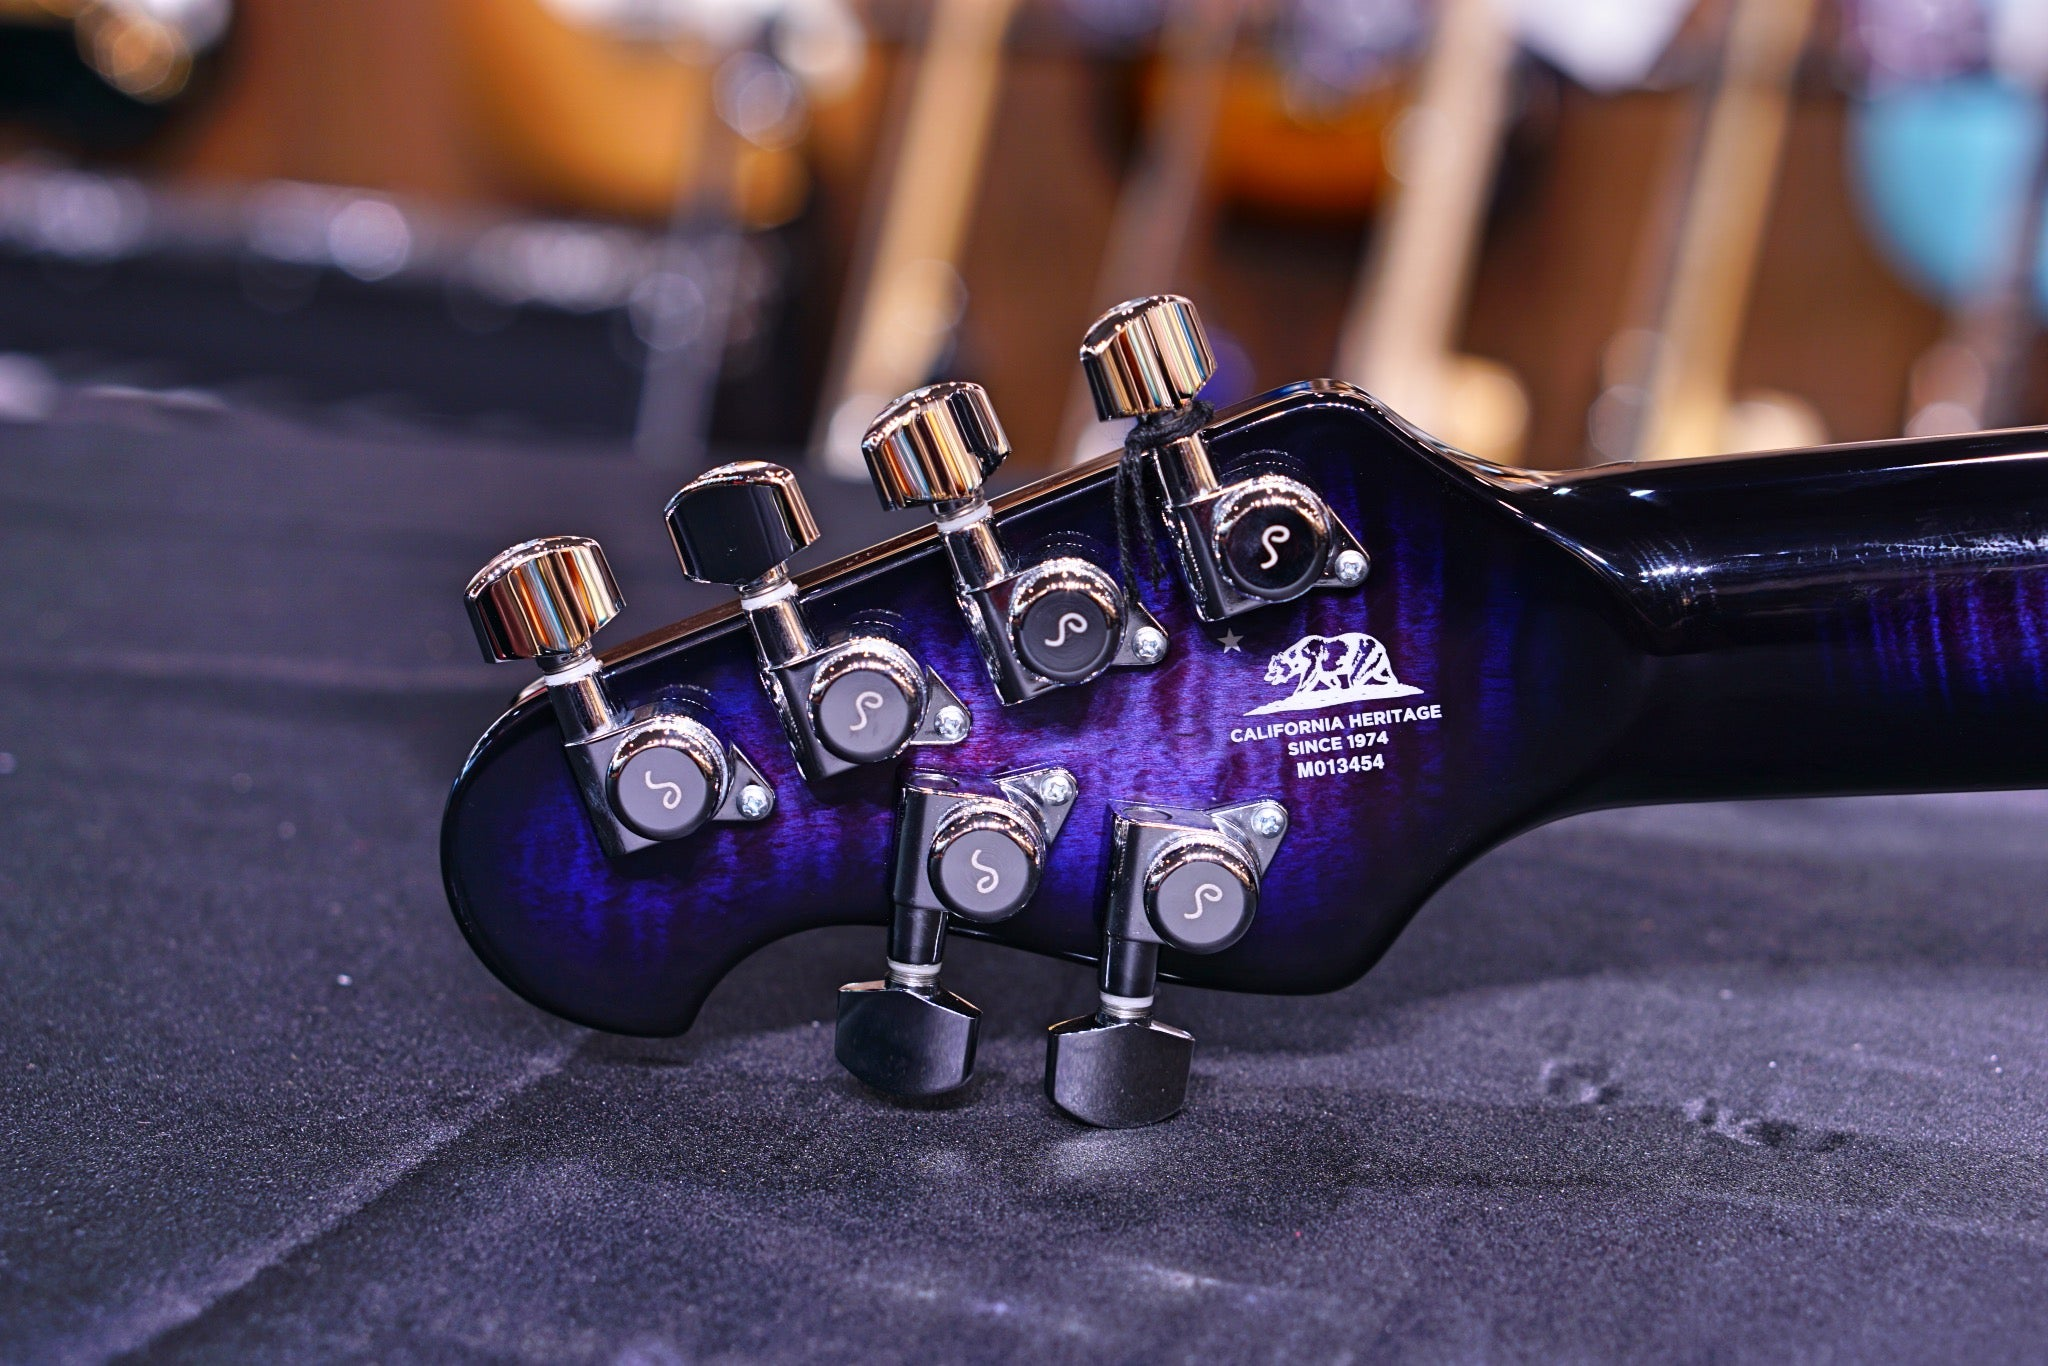 Ernie Ball Music Man Majesty John Petrucci Signature Electric Guitar - Purple Nebula M013454 - HIENDGUITAR   Musicman GUITAR